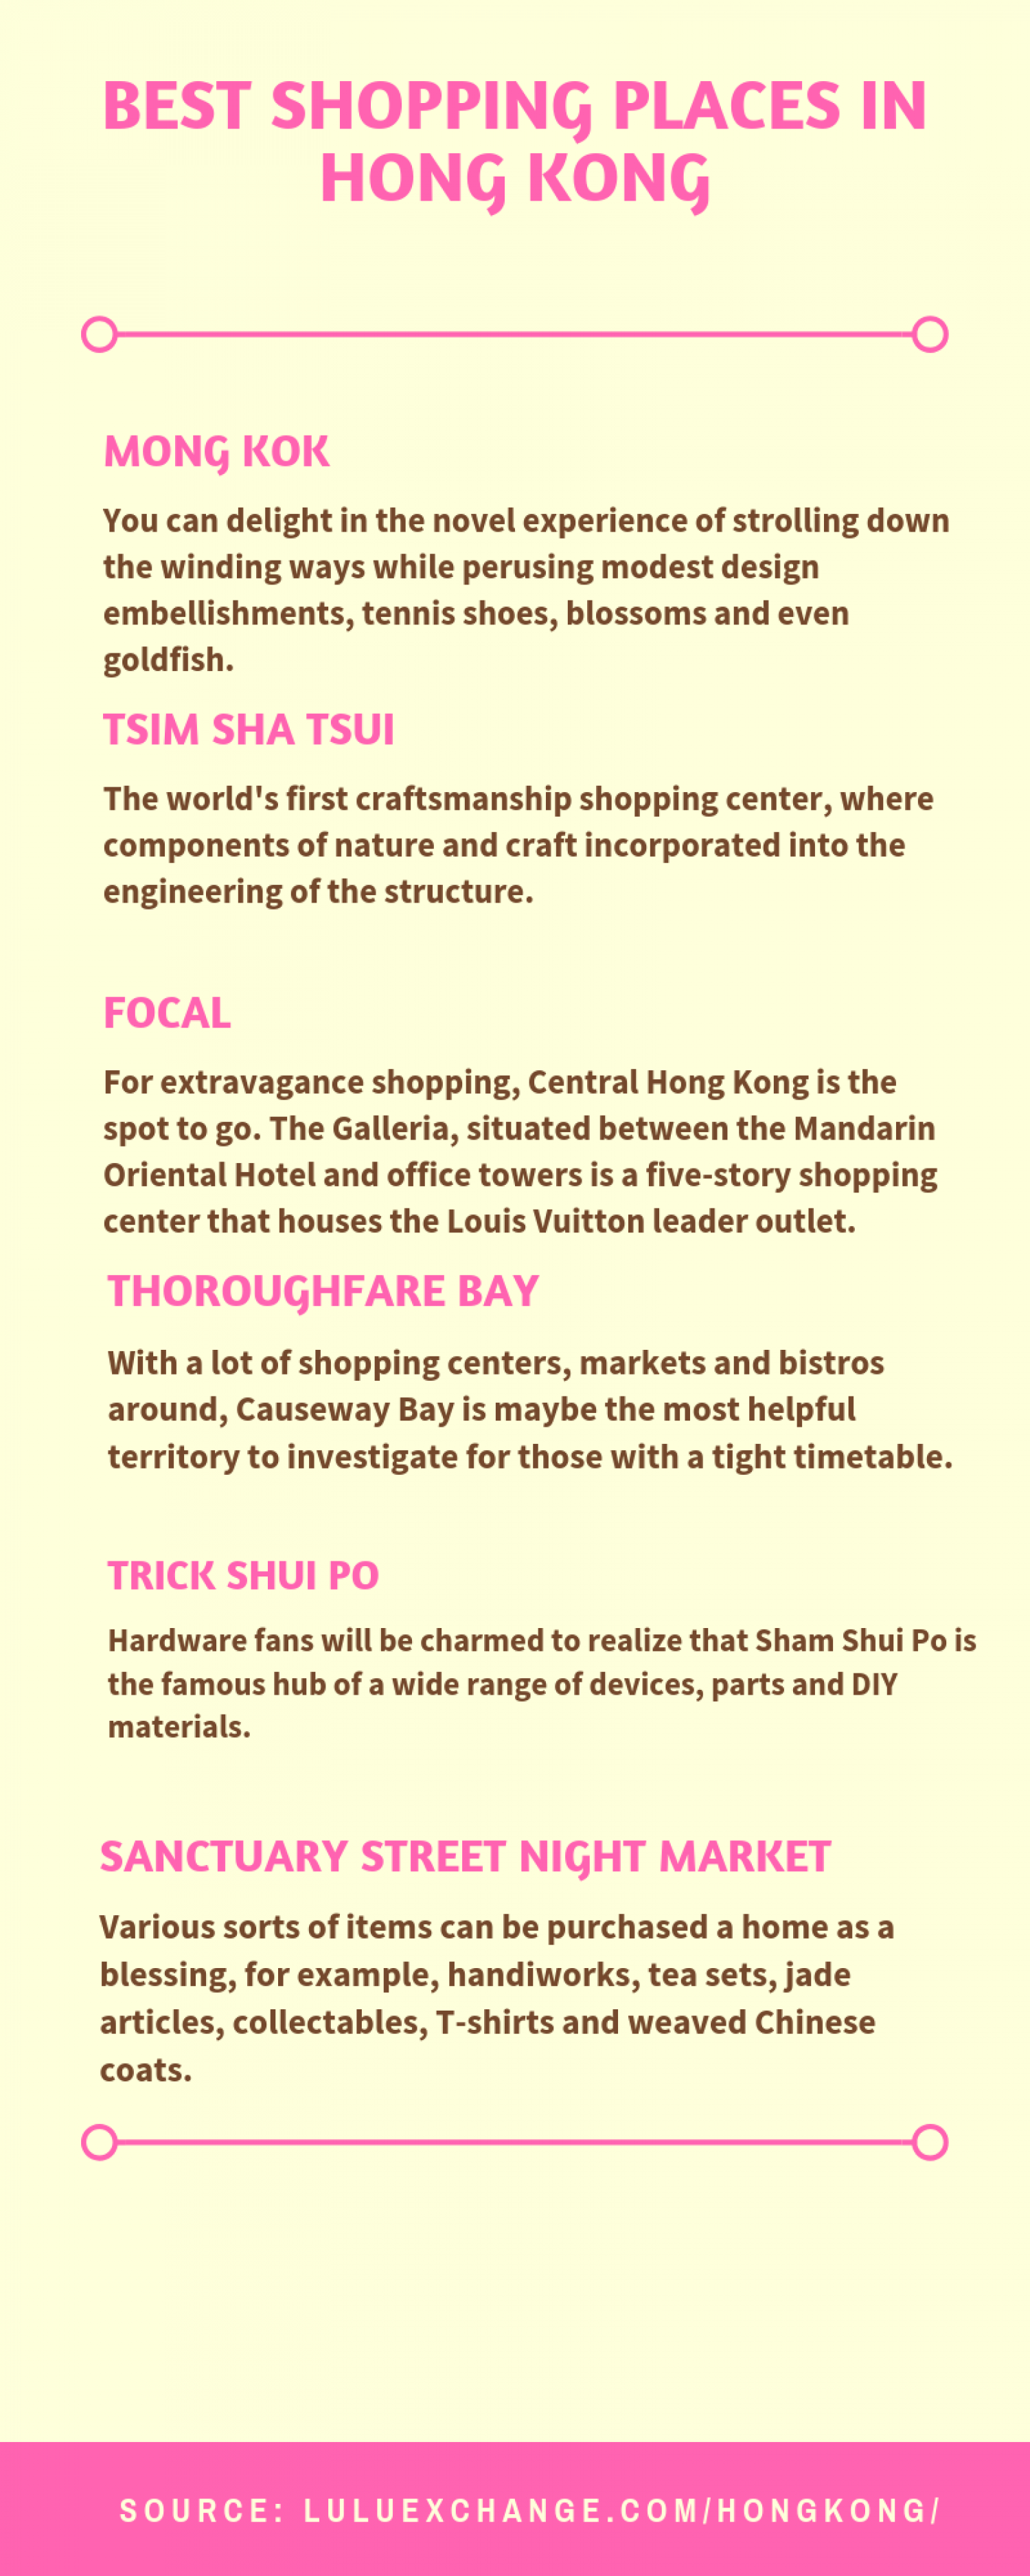 Best Shopping Places in Hong Kong  Infographic